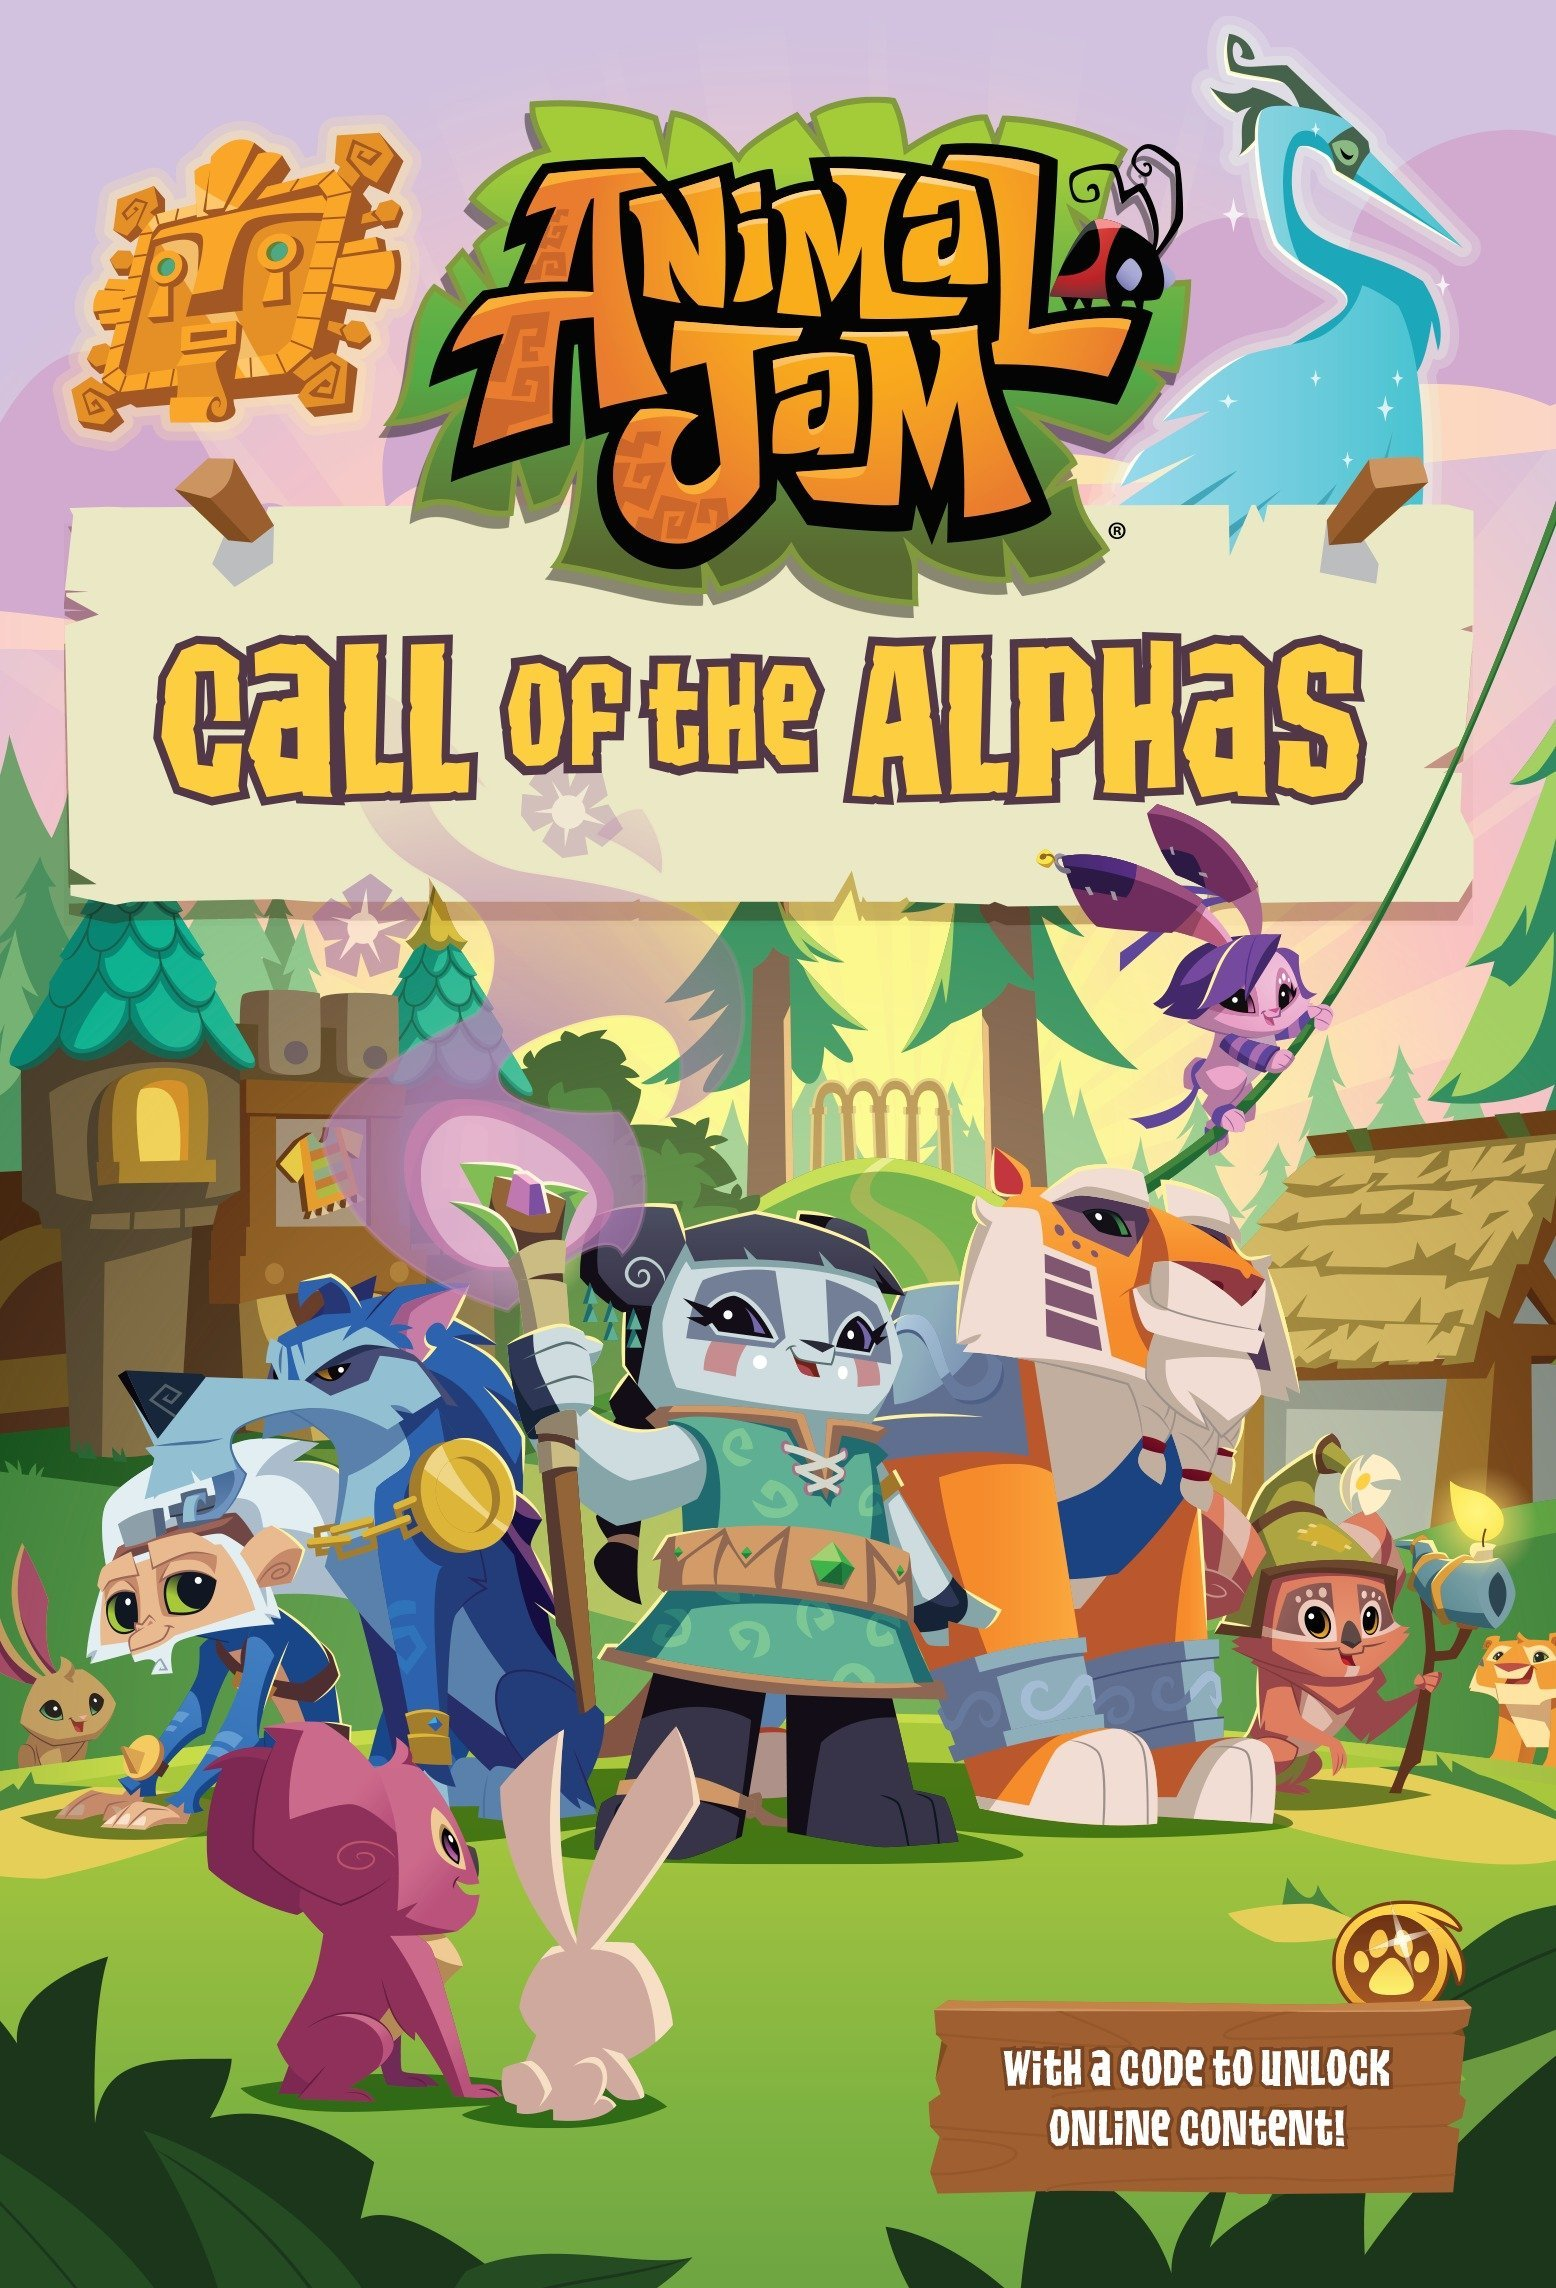 Call of the Alphas #1 (Animal Jam): Ellis Byrd